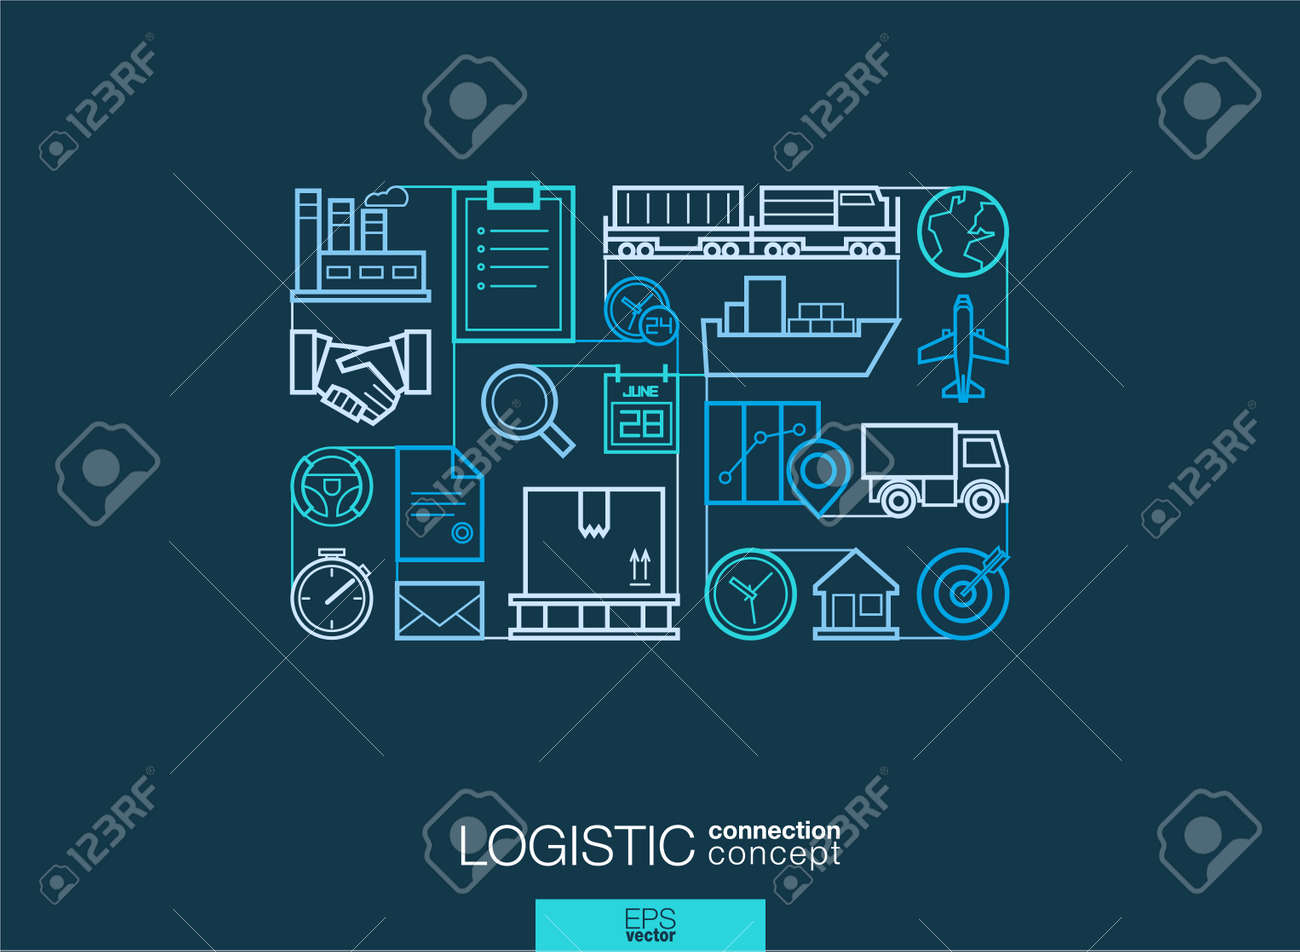 Logistic integrated thin line symbols. Modern linear style vector concept, with connected flat design icons. Illustration for delivery, service, shipping, distribution, transport, communicate concepts - 51018198